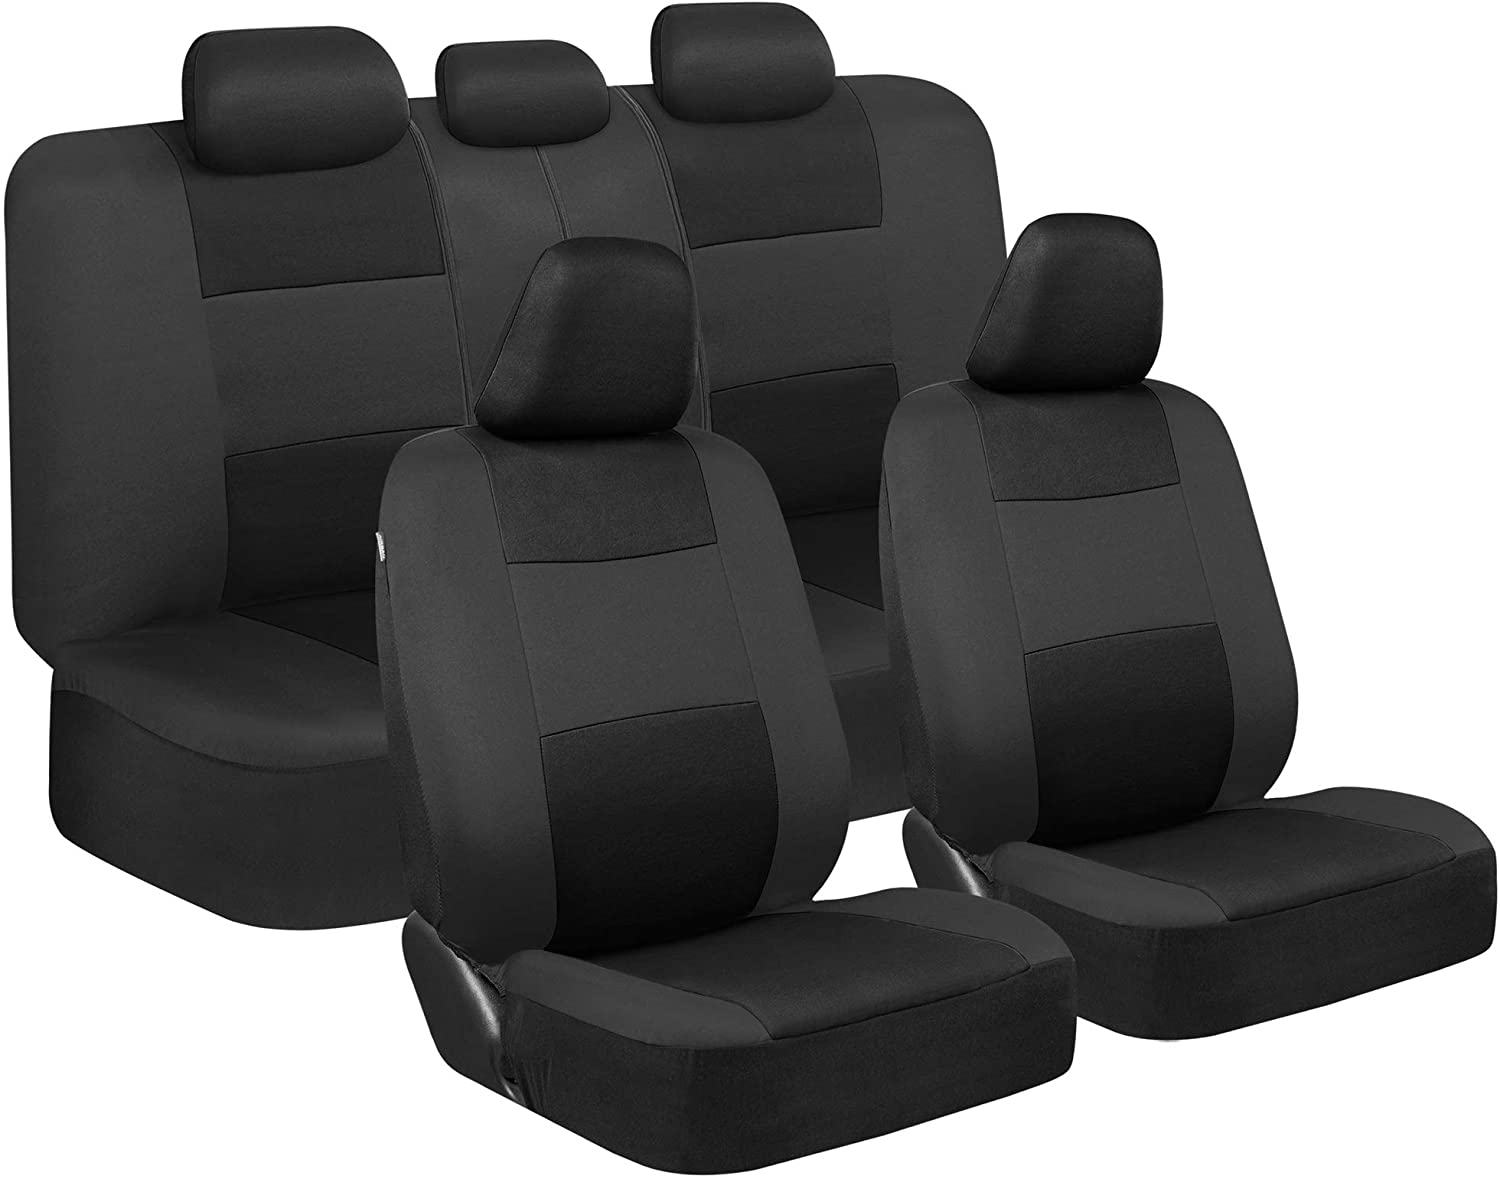 BDK PolyPro Car Seat Covers Full Set in Black on Charcoal – Front and Rear Split Bench Protection, Easy Install with Two-Tone Accent, Universal Fit for Auto Truck Van SUV